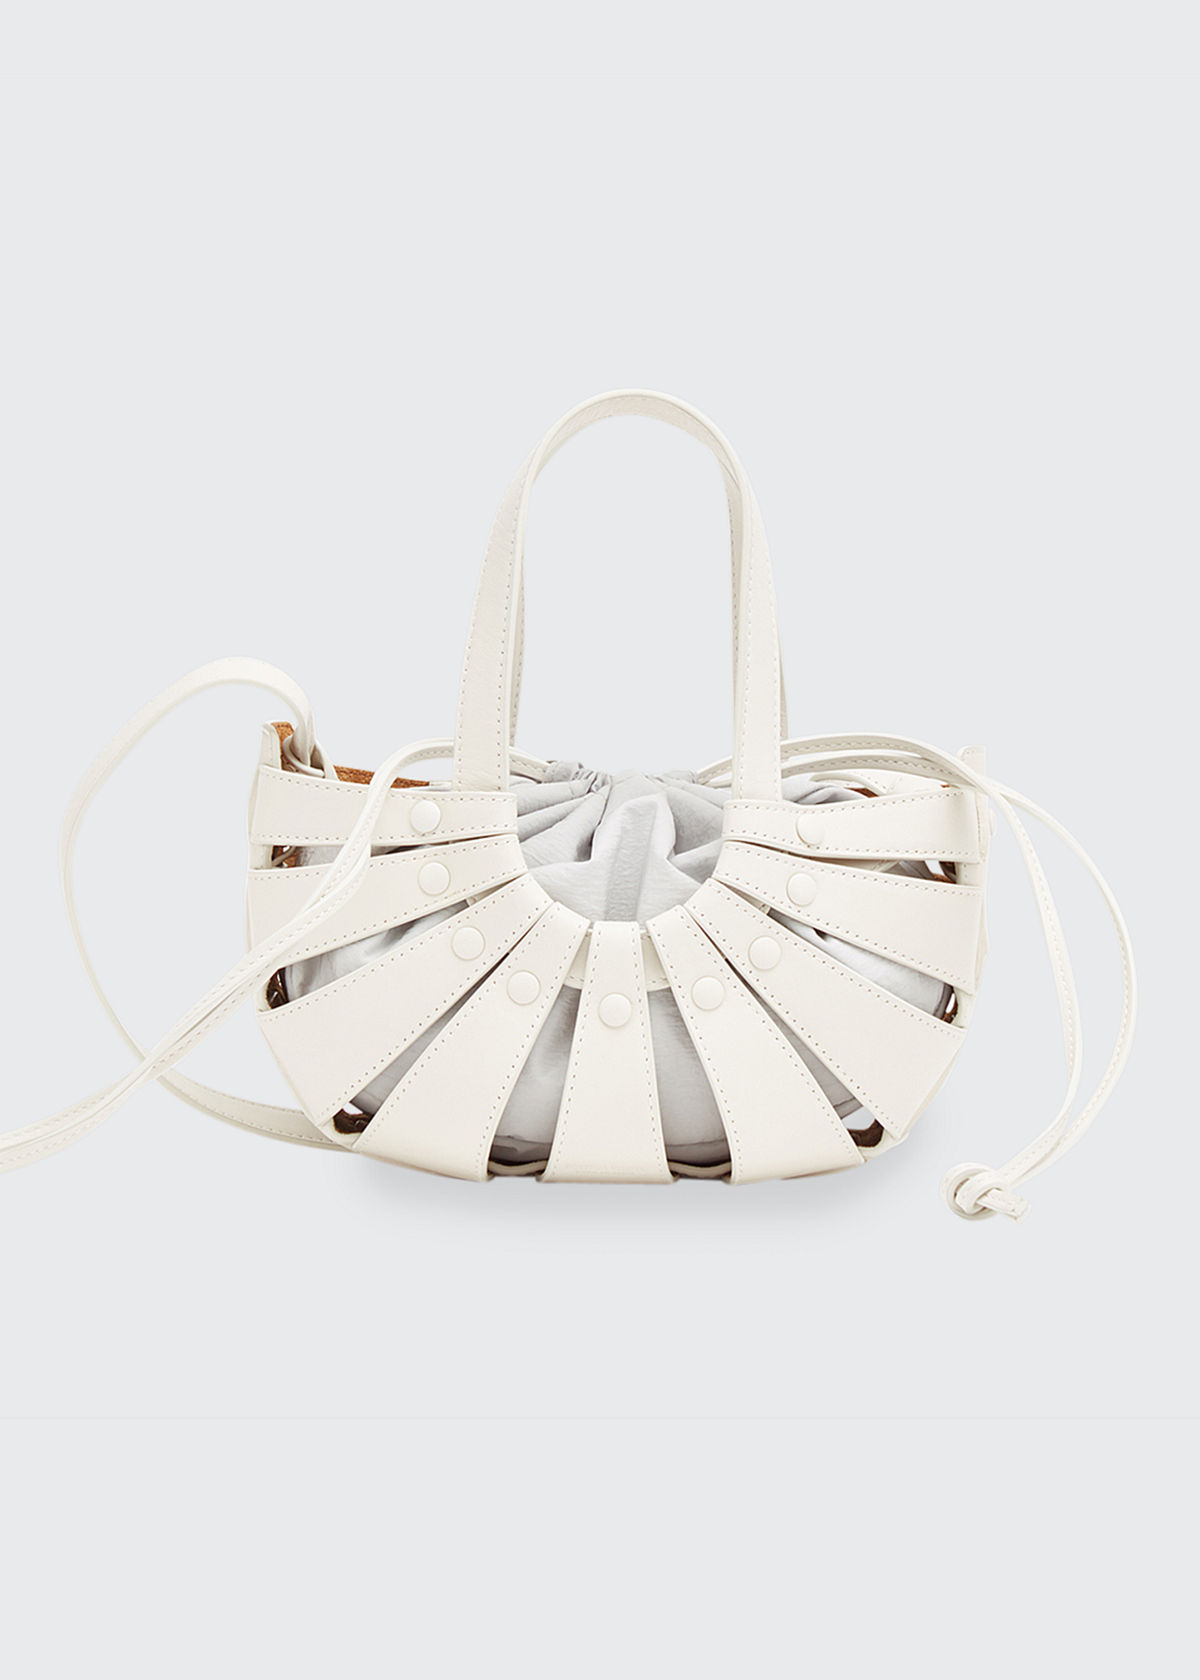 Bottega Veneta Leathers THE SHELL BAG